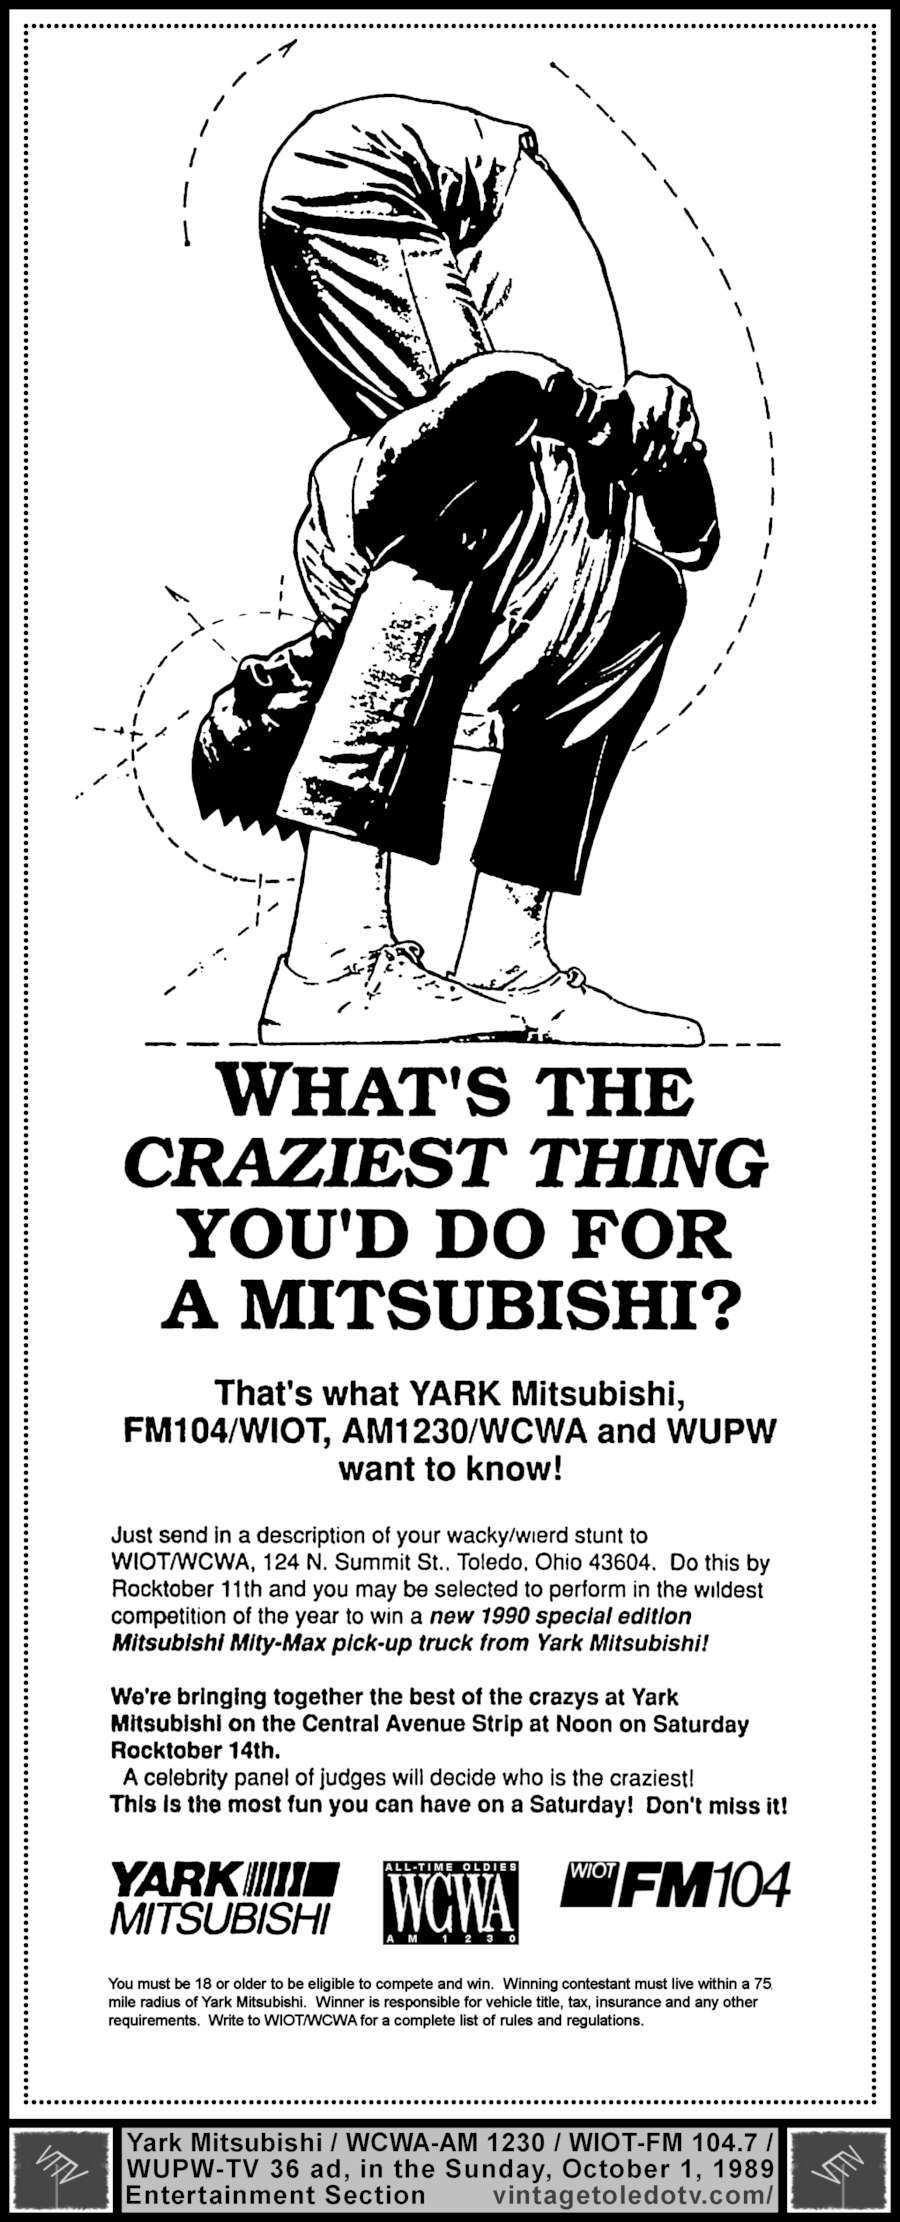 Vintage Toledo TV - Other Vintage Print Ads - Yark Mitsubushi Contest...WCWA-AM / WIOT-FM / WUPW-TV (Sun 10/1/89 ad)